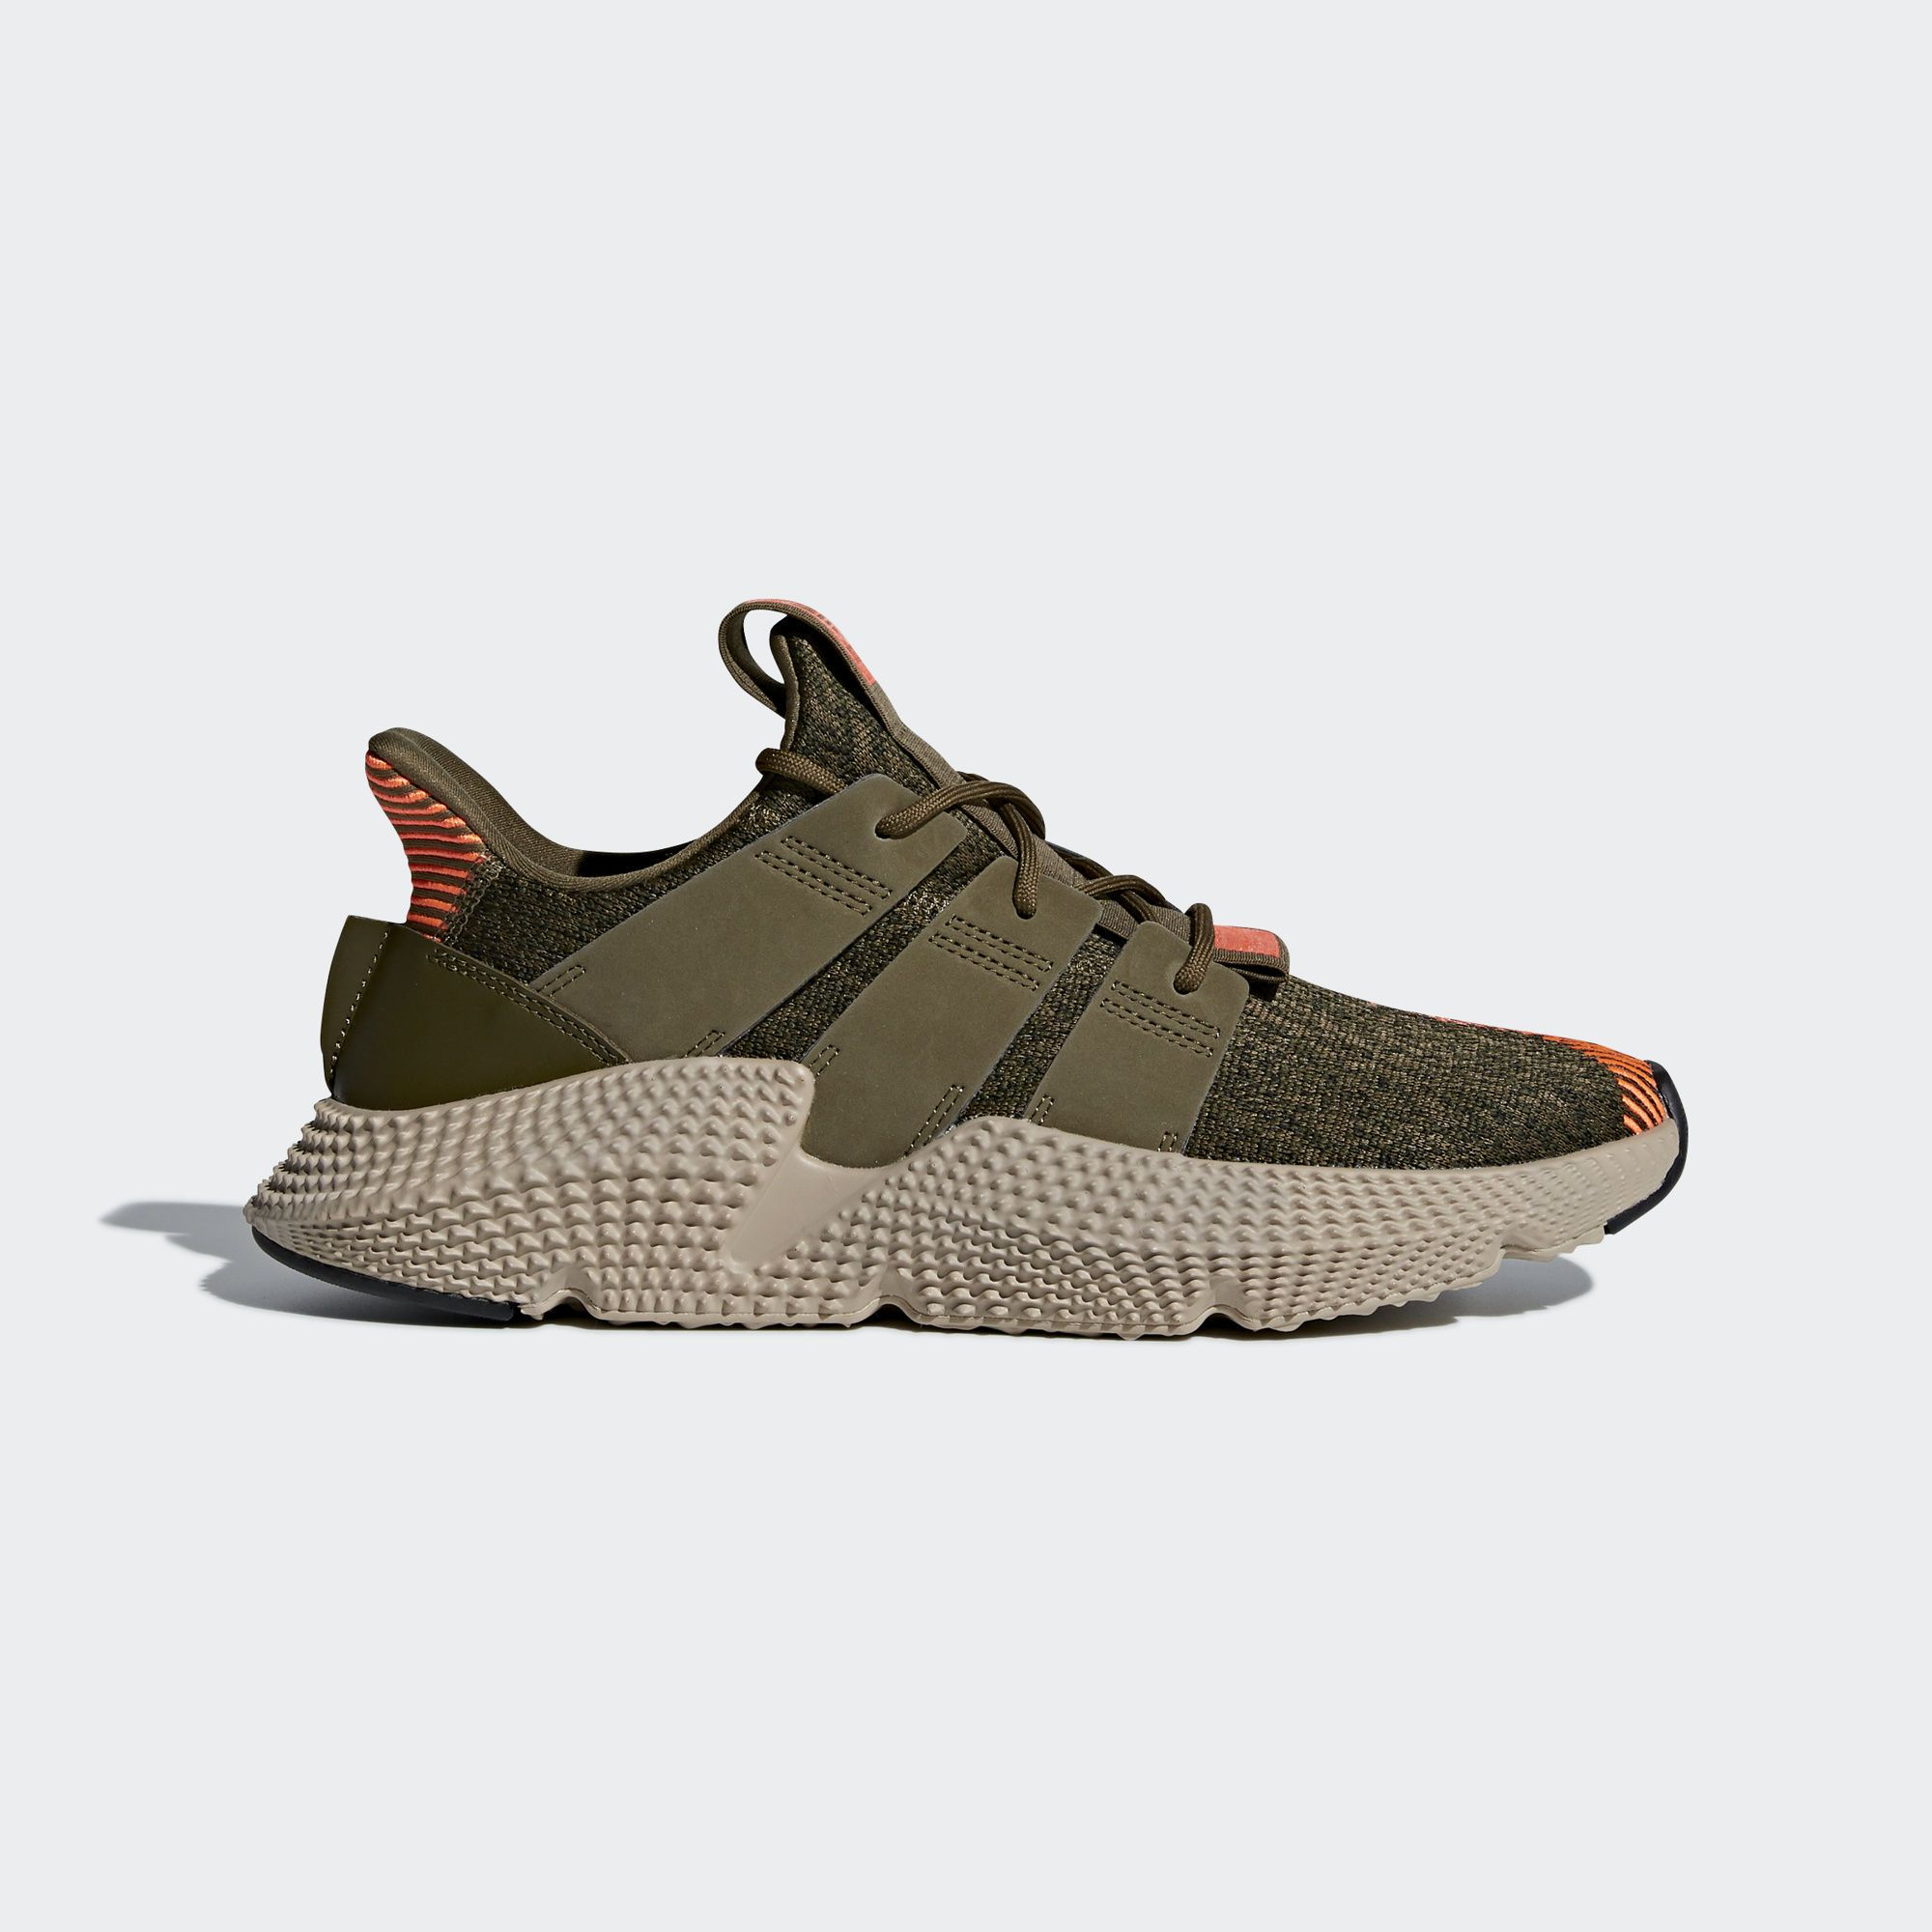 timeless design 91895 56ff9 Shop for Prophere Shoes - Green at adidas.co.uk! See all the styles and  colours of Prophere Shoes - Green at the official adidas UK online store.